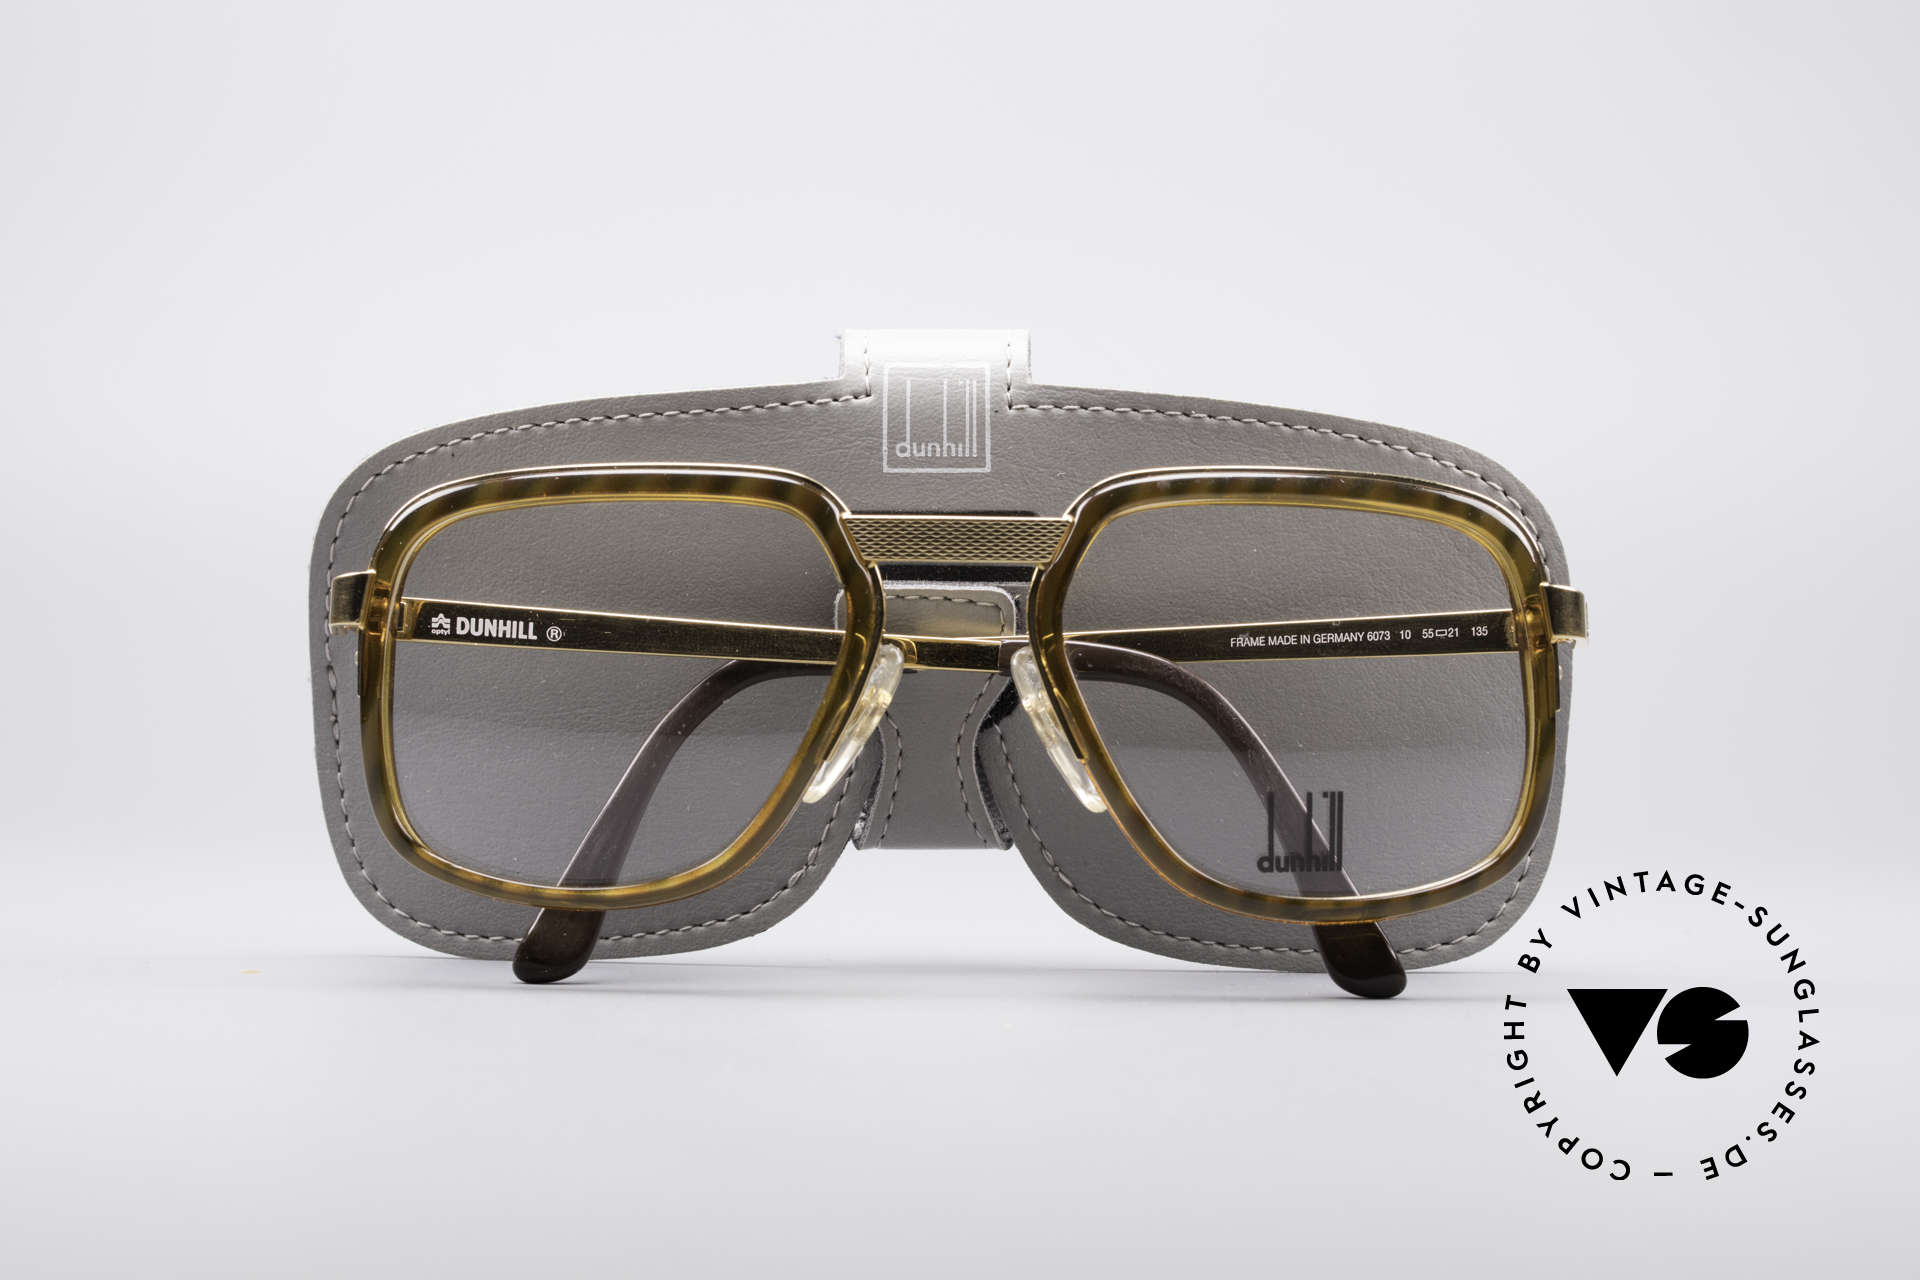 Dunhill 6073 Gold Plated 80's Glasses, NO RETRO GLASSES, but an authentic 1980's rarity!, Made for Men